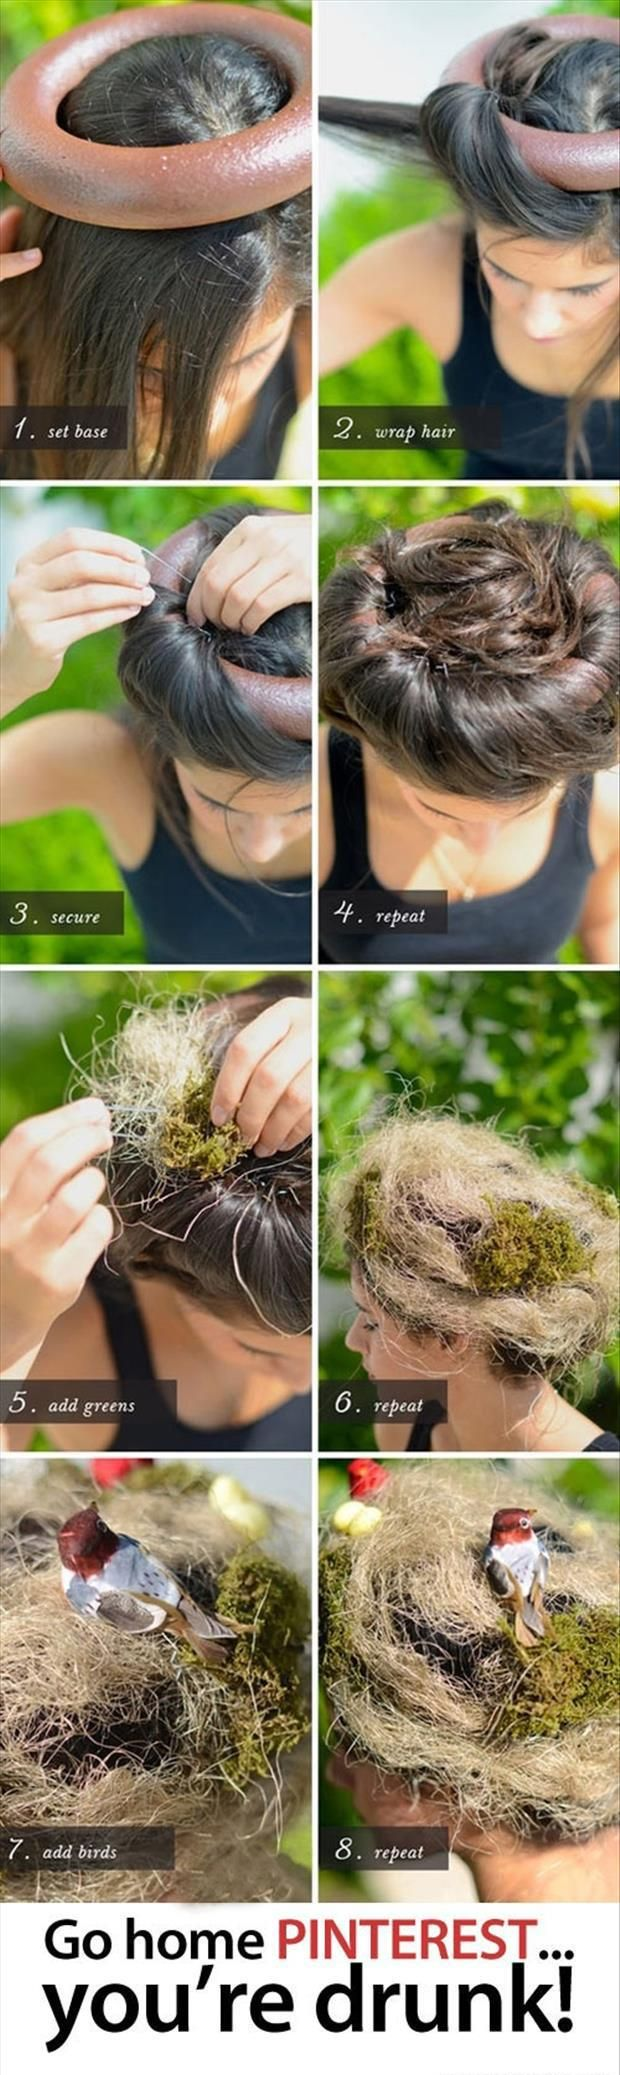 buy clothing online cheap  Natalee Huddlestone on Hilarious      Nests  Bird Nests and Mother Nature